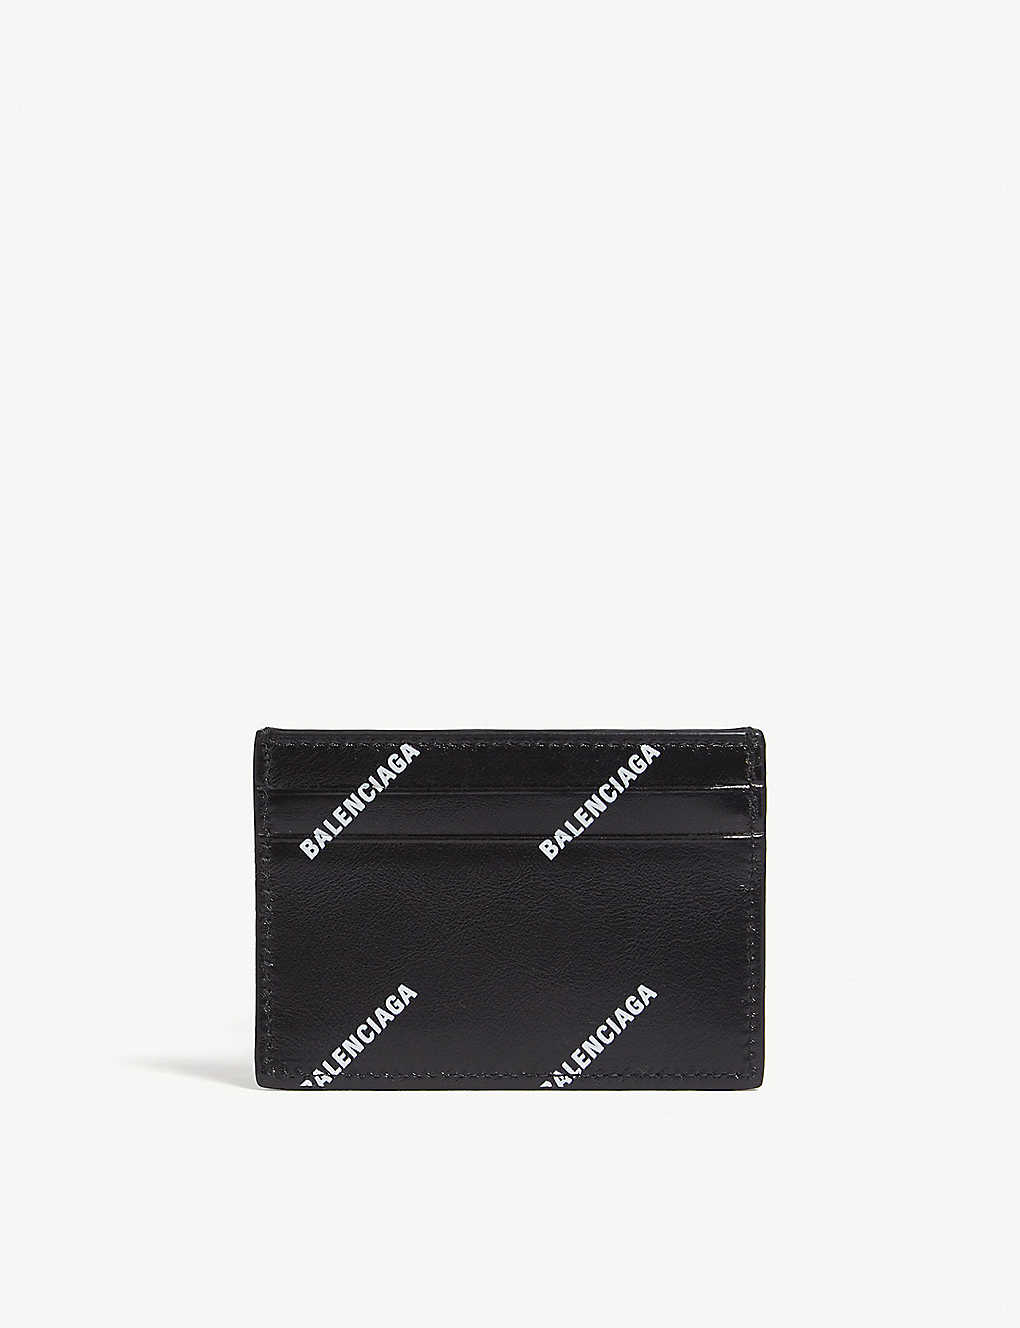 1aa31bc3310 BALENCIAGA - Logo leather card holder | Selfridges.com